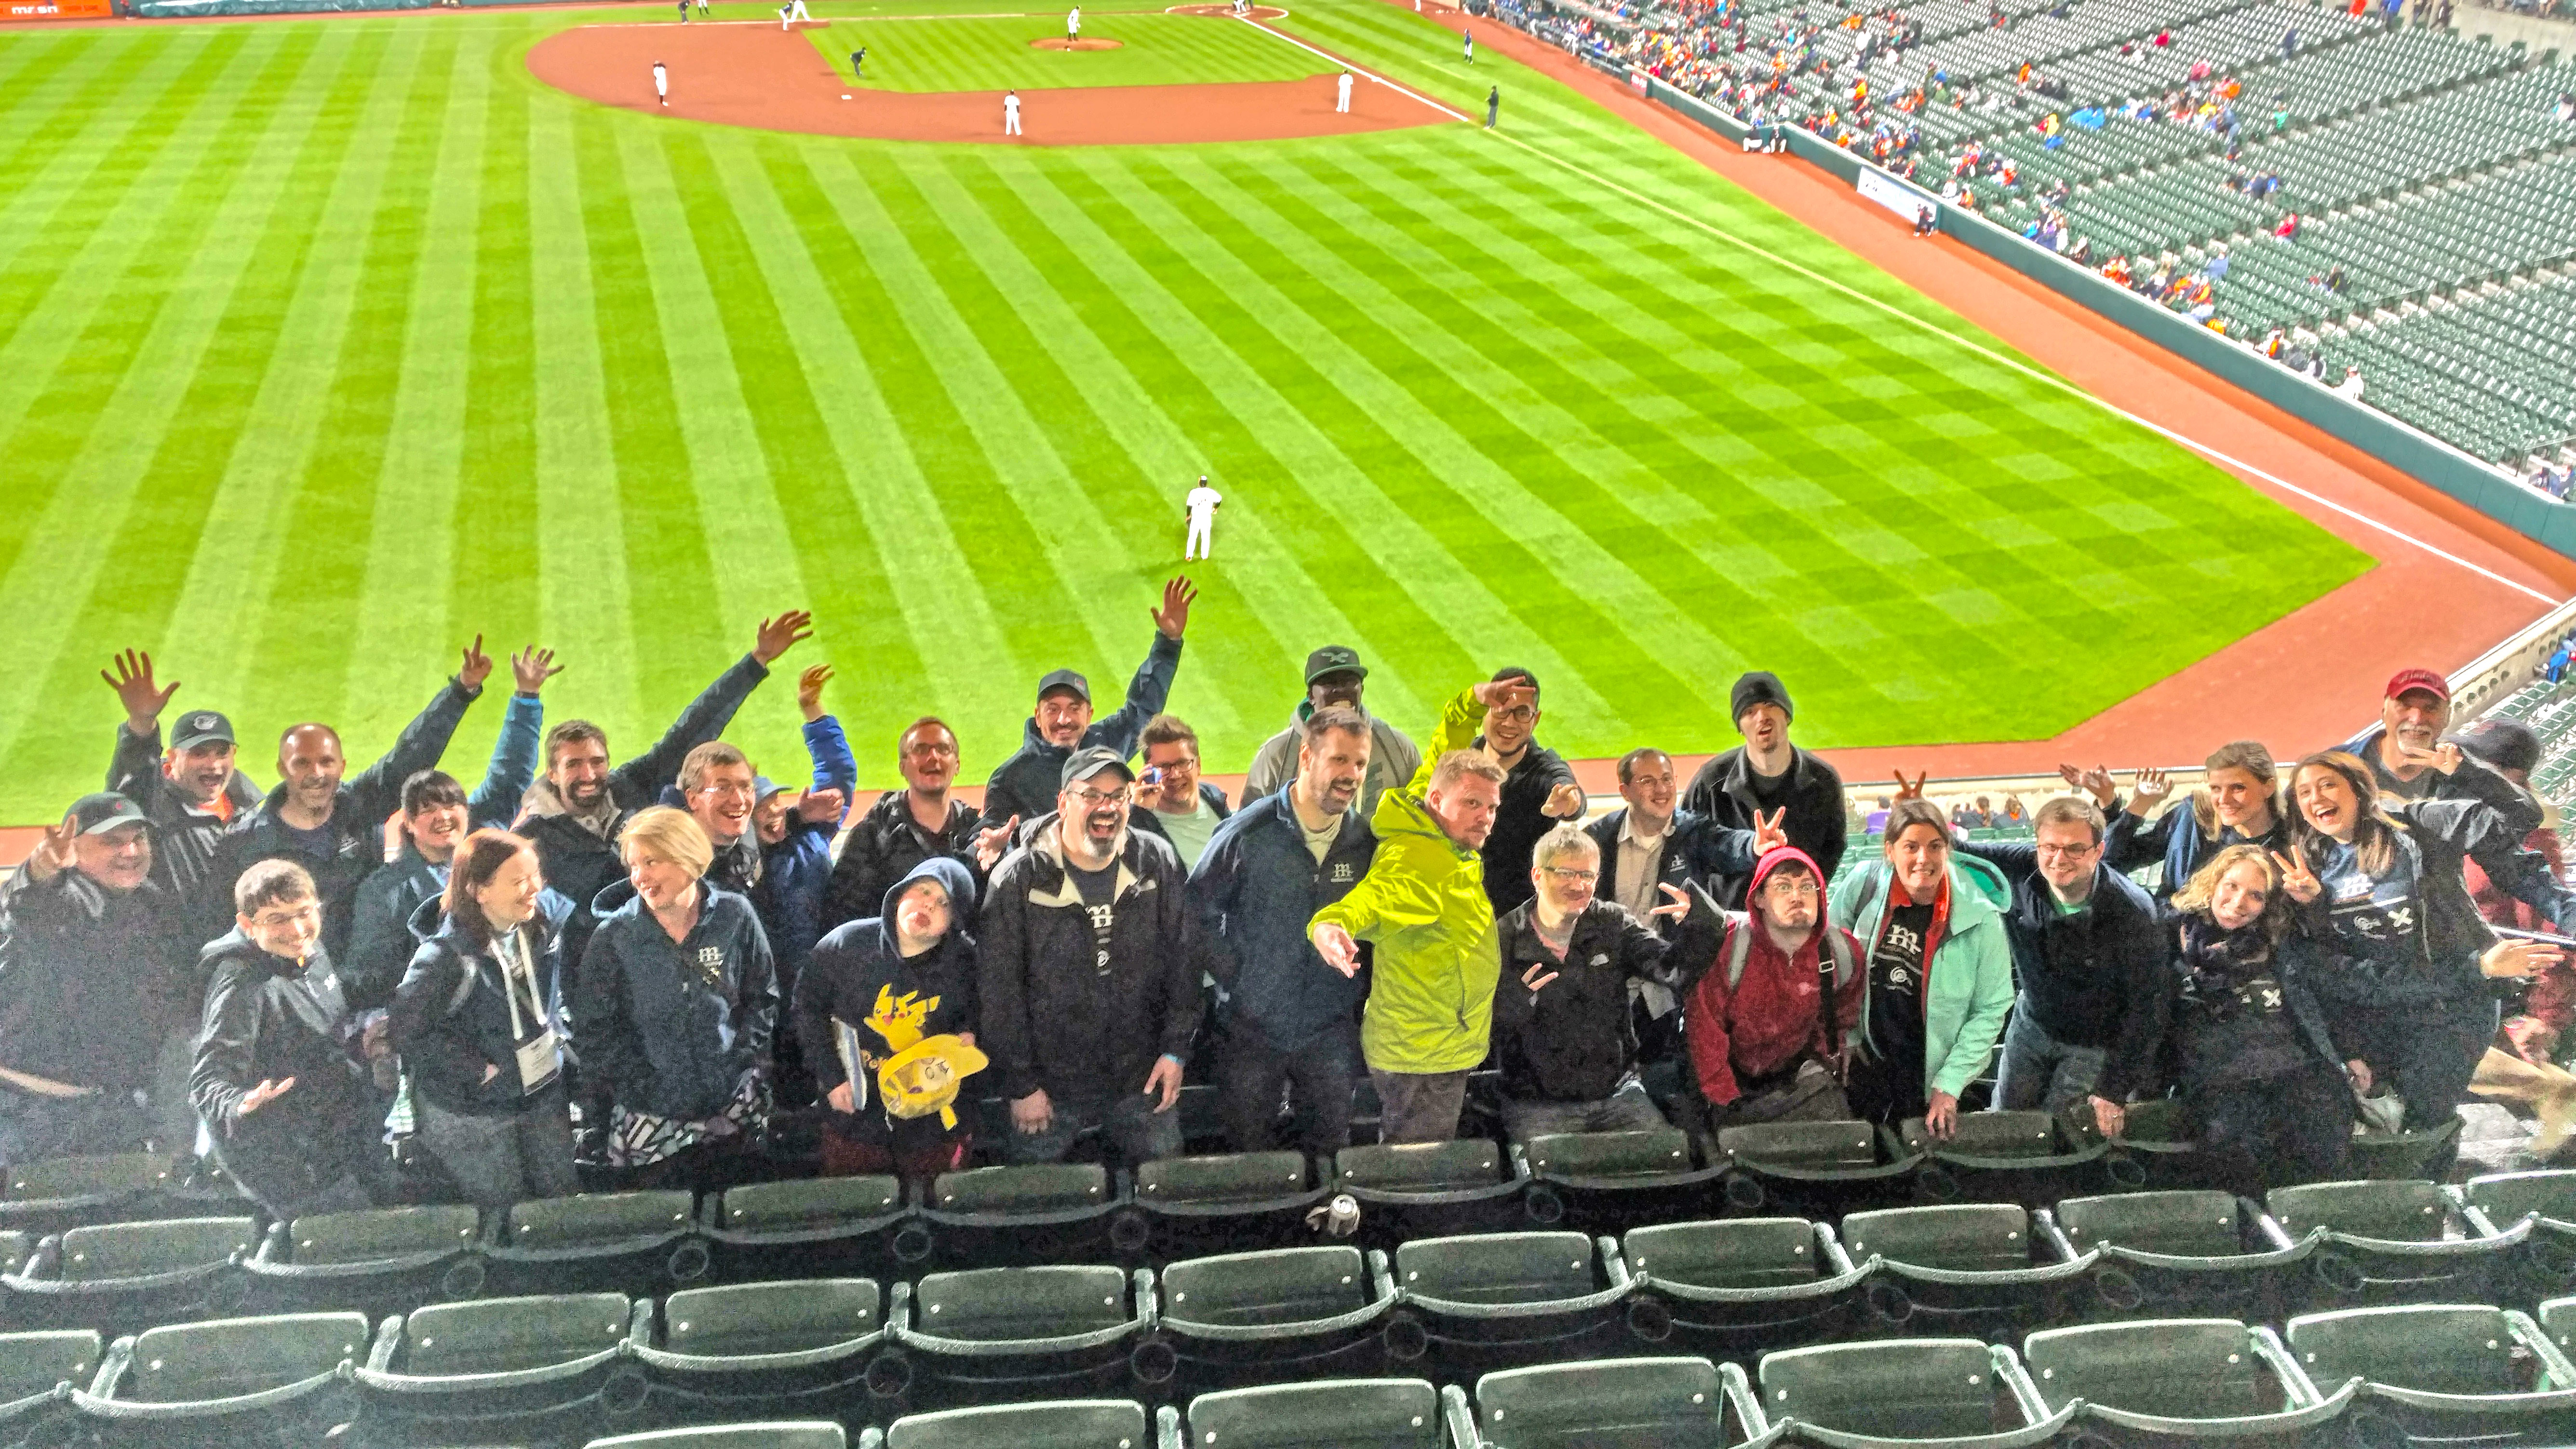 Picture of Mediacurrent team at a Braves game in front of the field